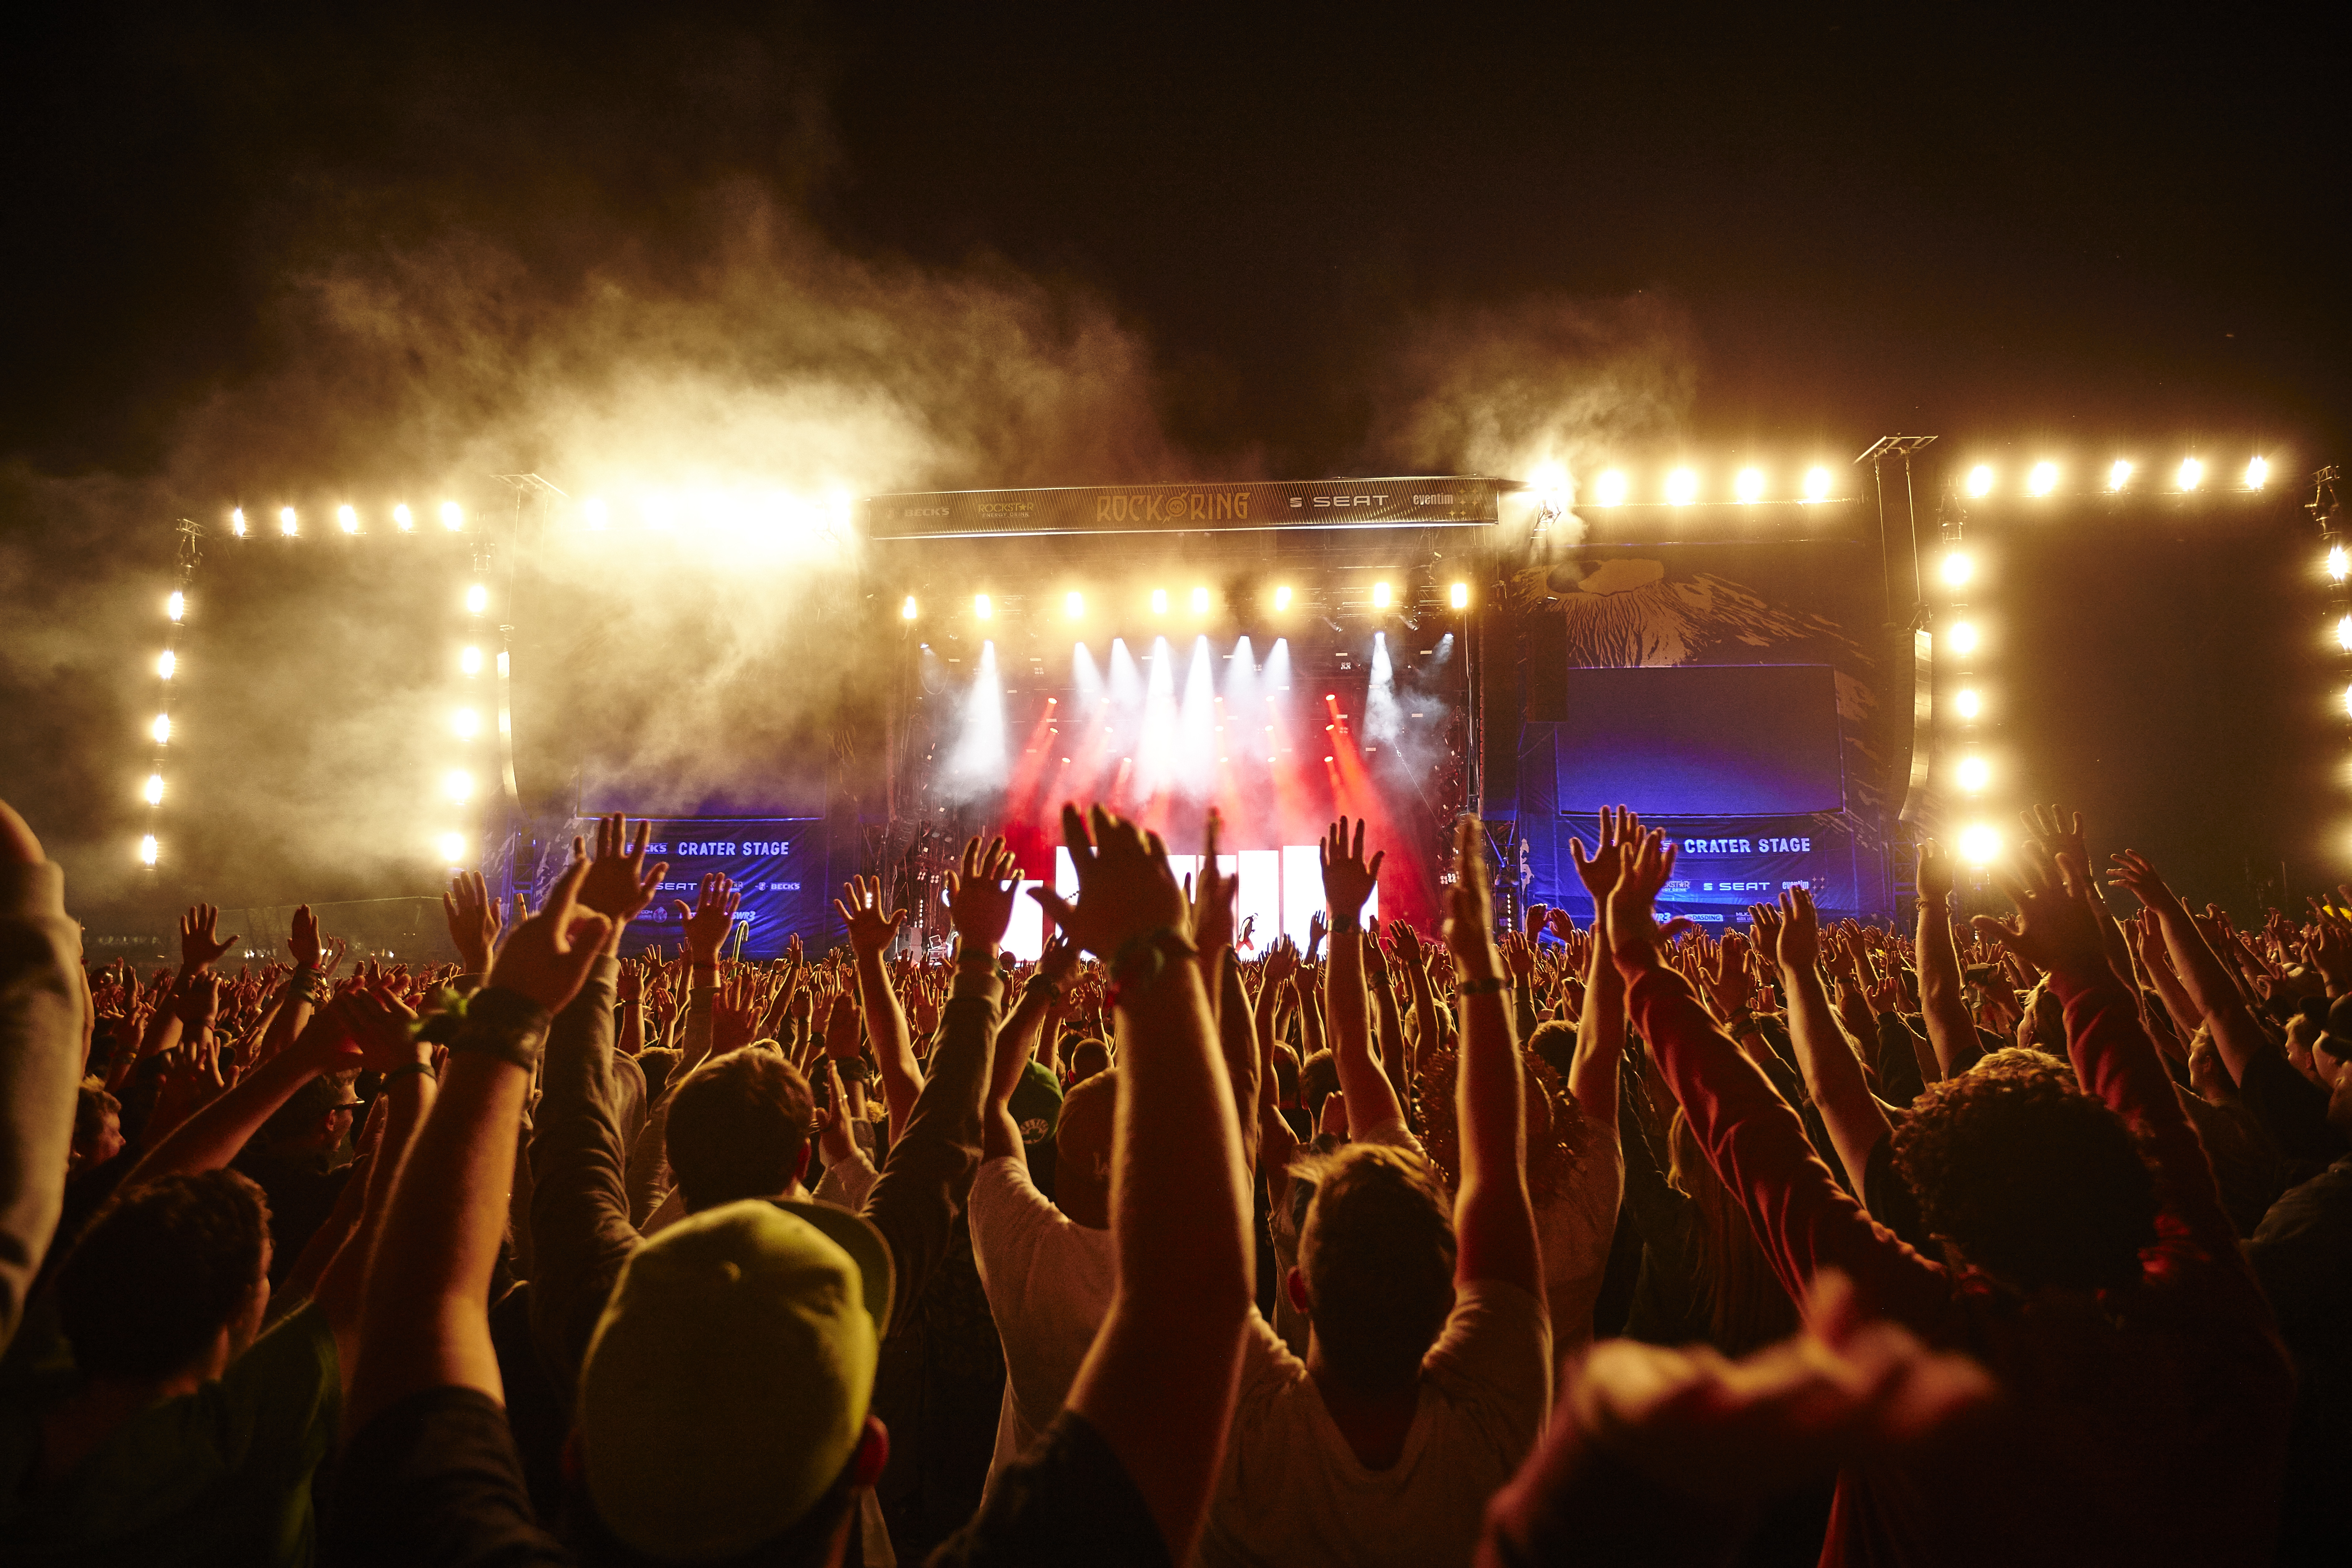 Rock am Ring 2016 - Our Recommendations (Part 2) - All